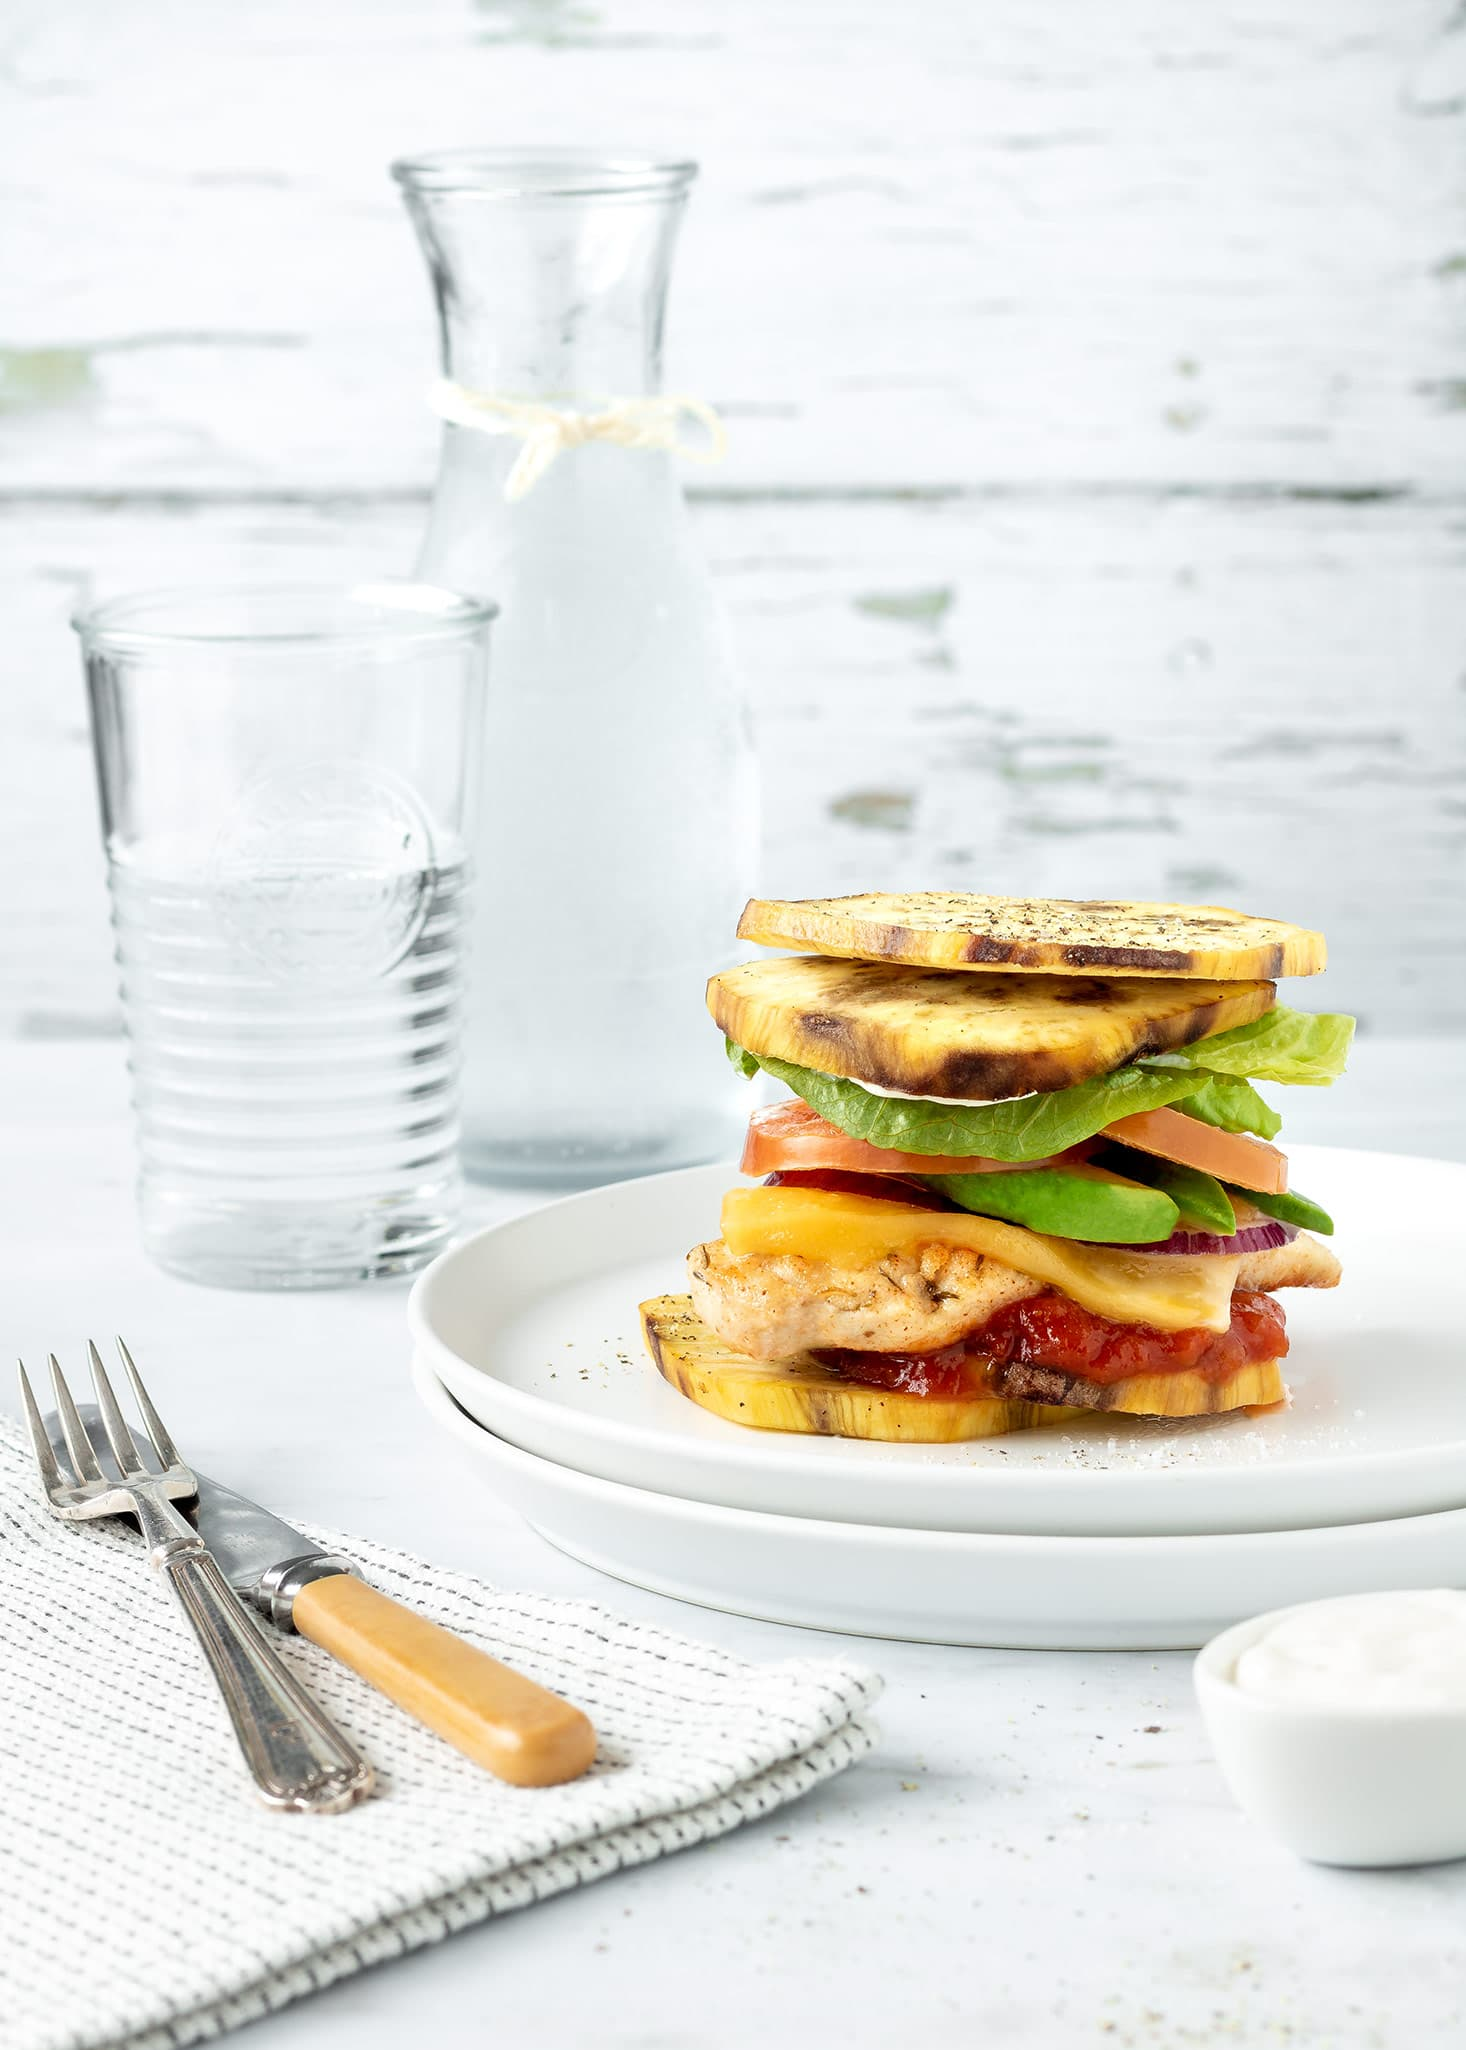 Chicken burger stack on a plate.